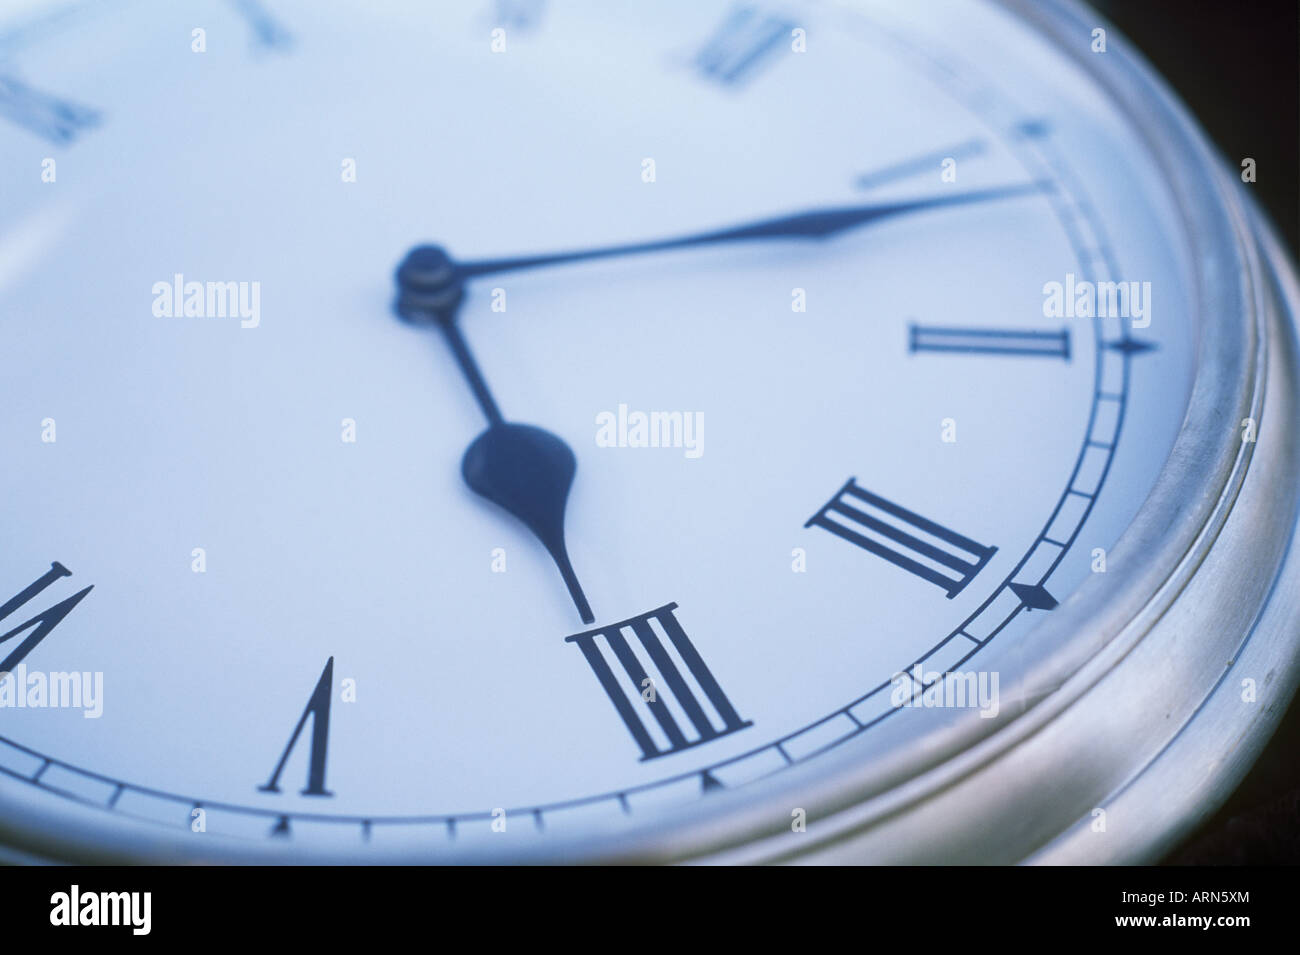 Time pocket watch with roman numerals, British Columbia, Canada. - Stock Image